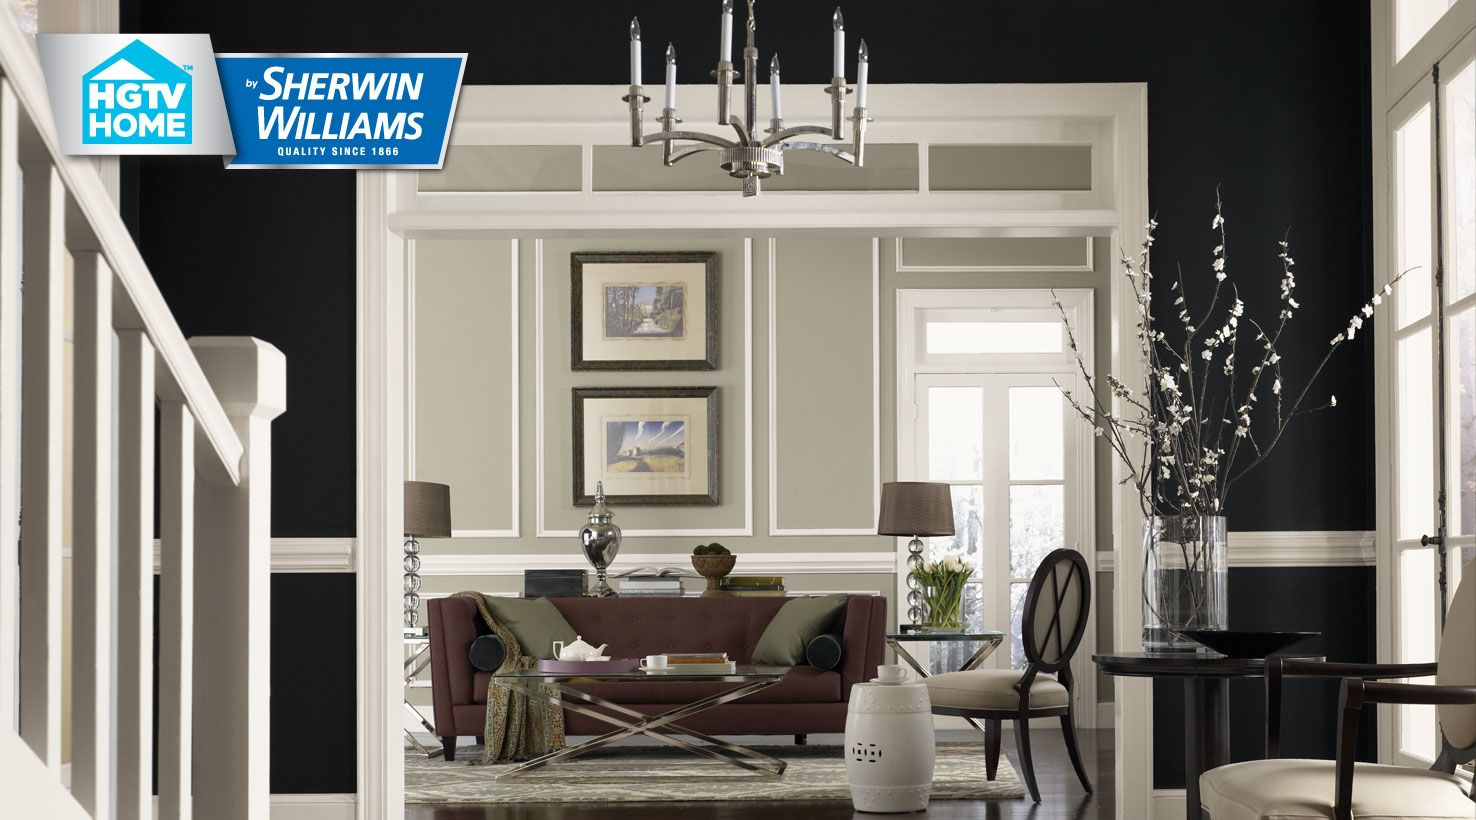 sherwin williams livable luxe room ideas | SW - HGTVLivableLuxe - 1